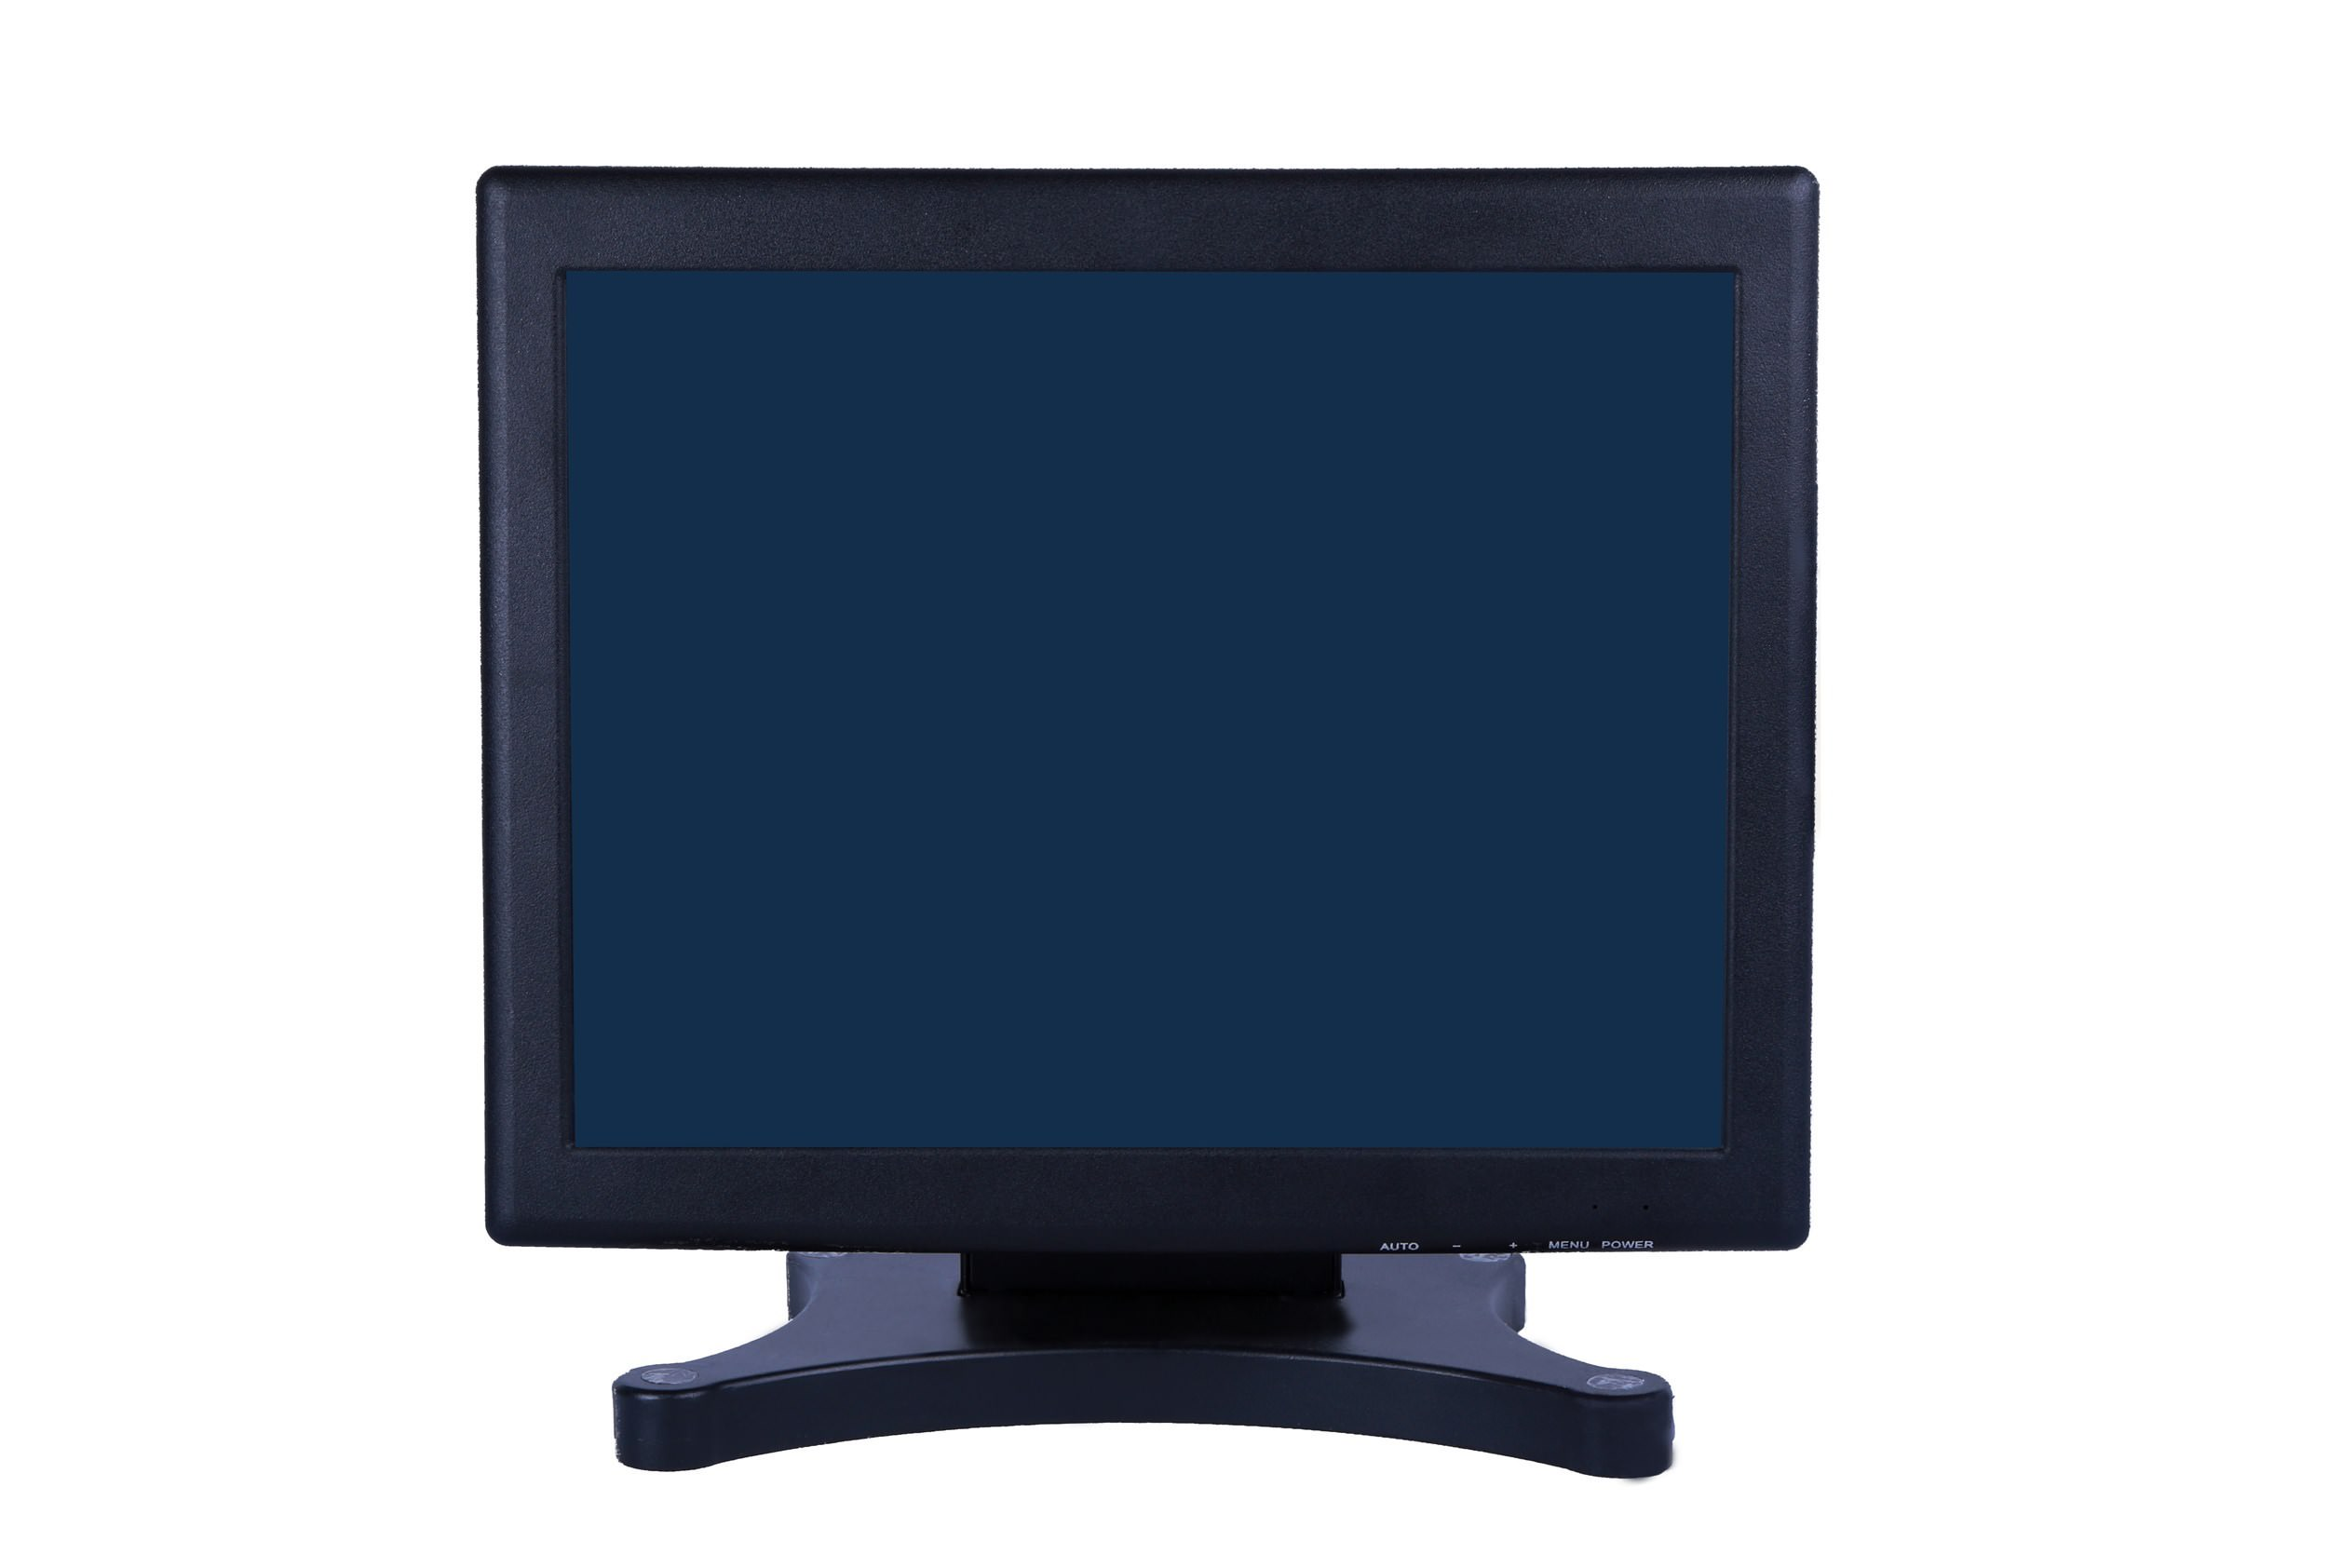 "MONITOR TACTIL BLUEBEE 15"" NEGRO USB TM -215"